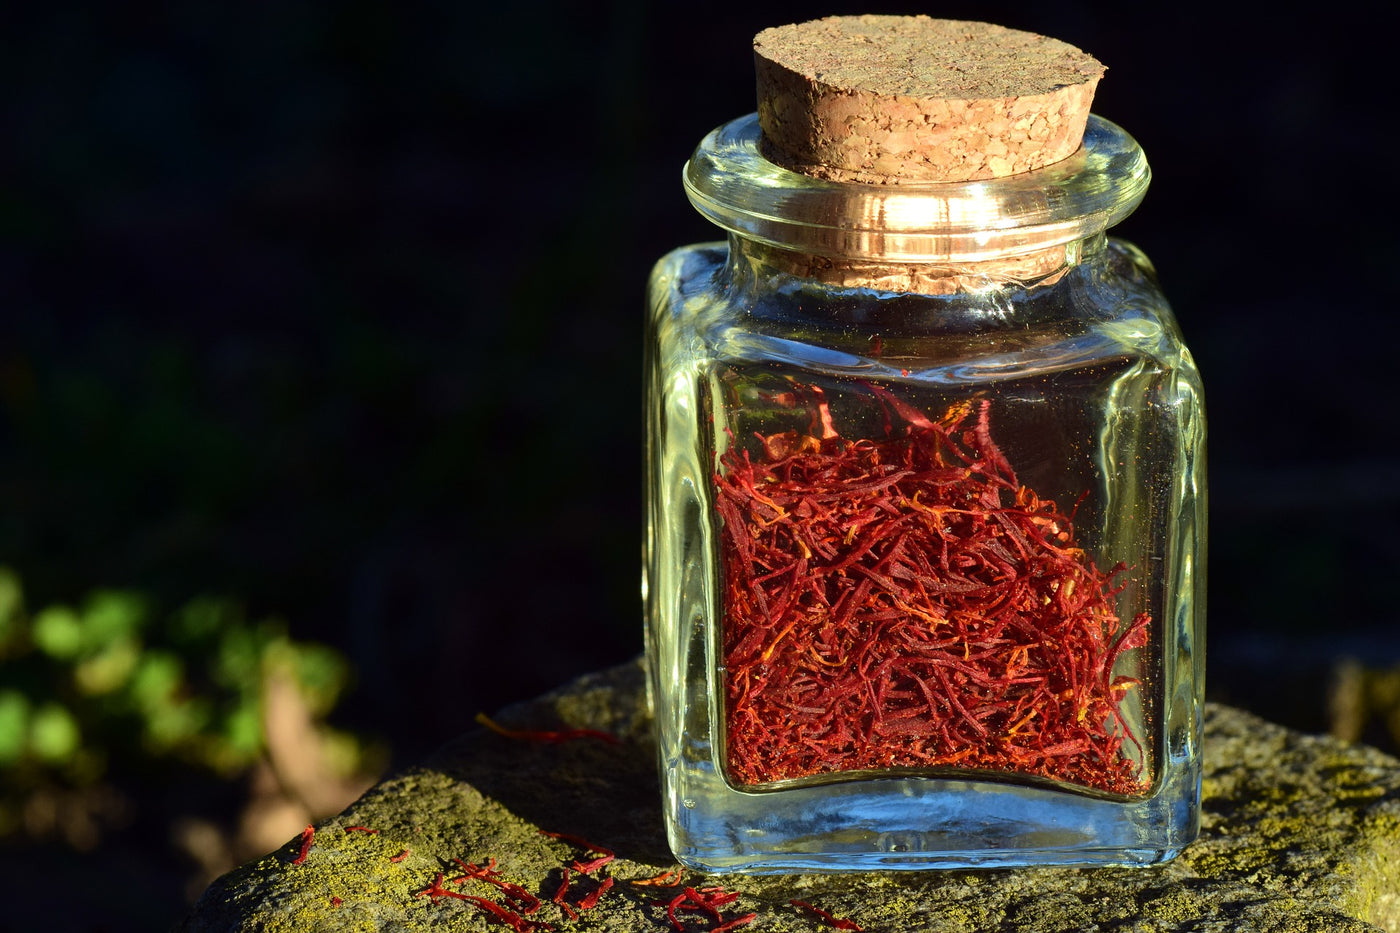 Saffron: A Treat for the Taste Buds, an Even Better One for the Mind